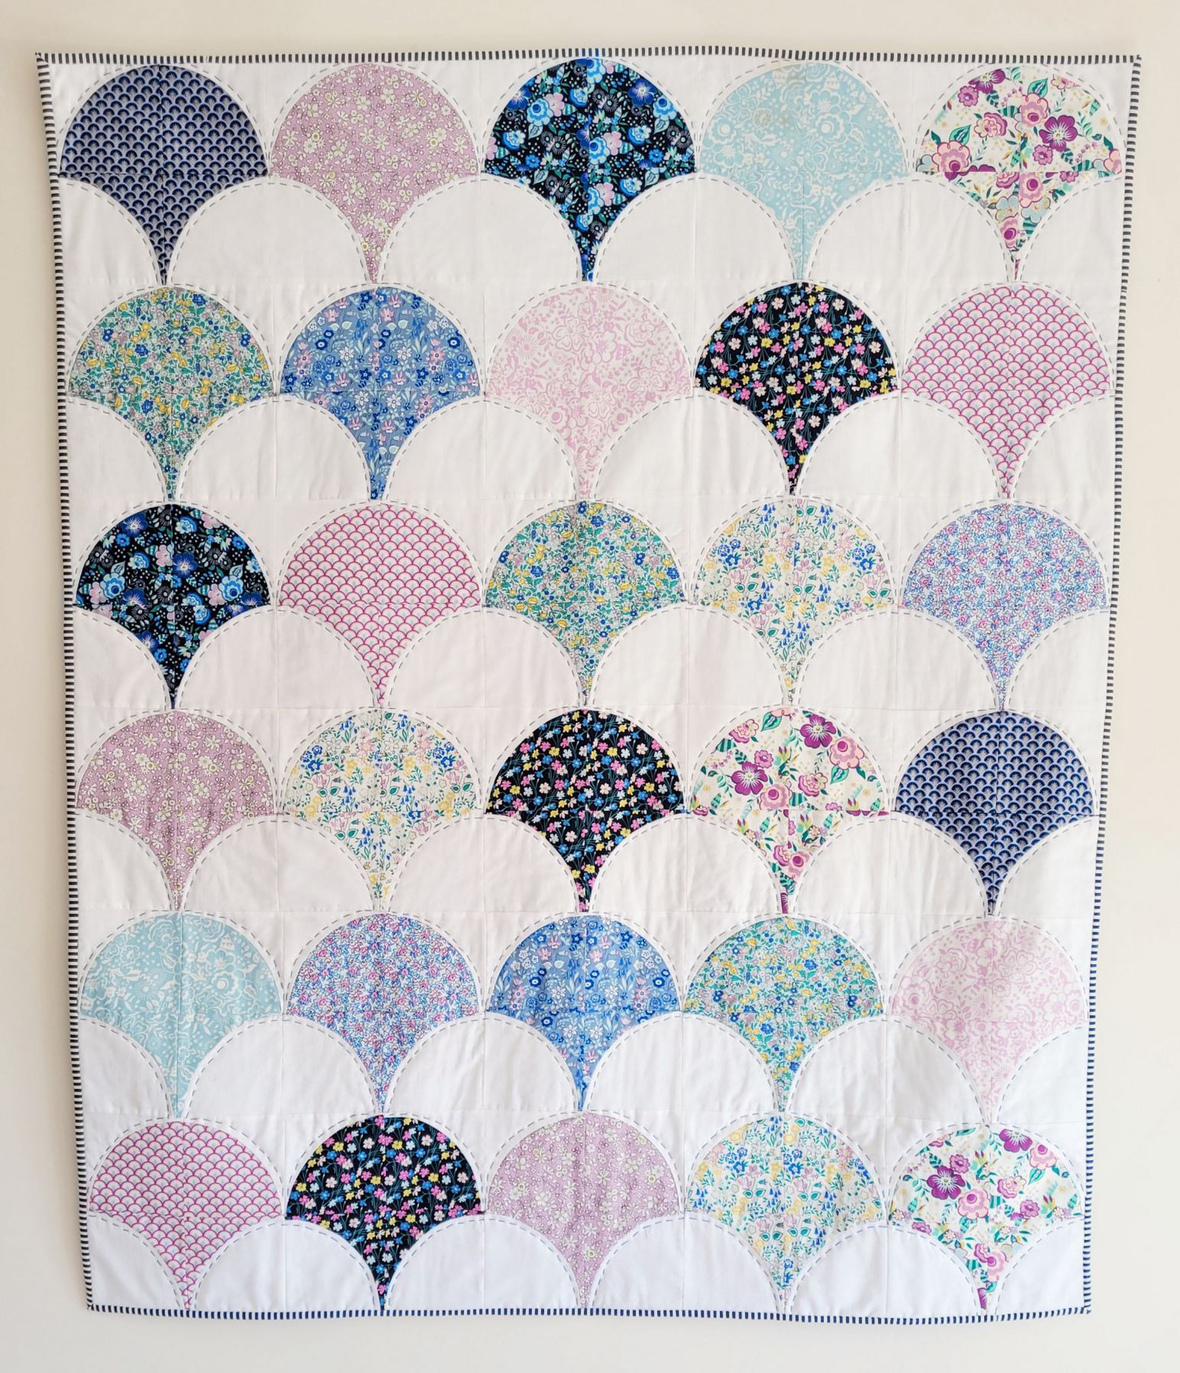 Deco Dance Clam shell quilt